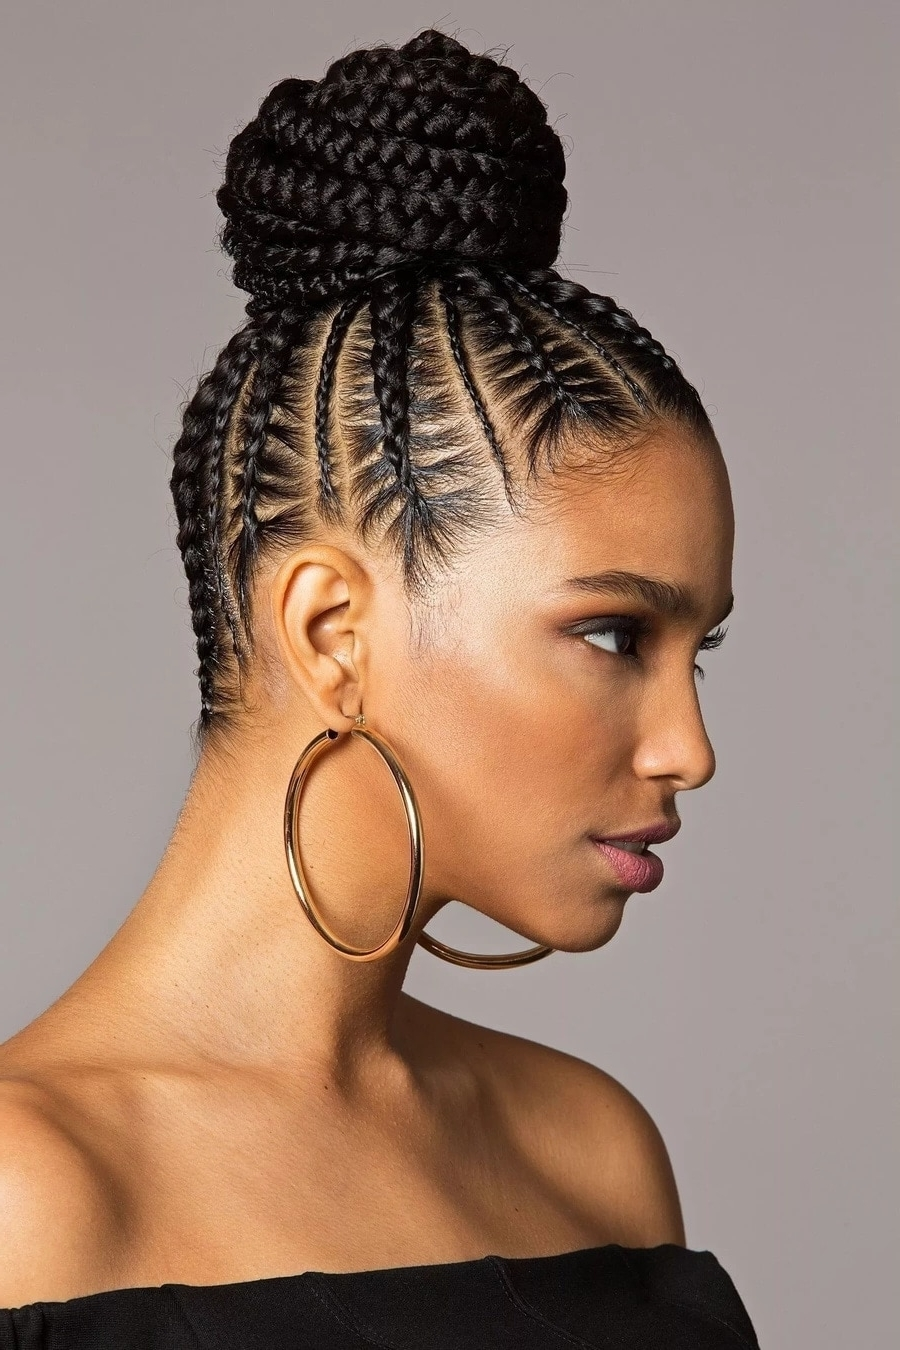 2017 Braided Hairstyles Inside Best Box Braids Hairstyles 2018 ▷ Tuko.co (View 2 of 15)